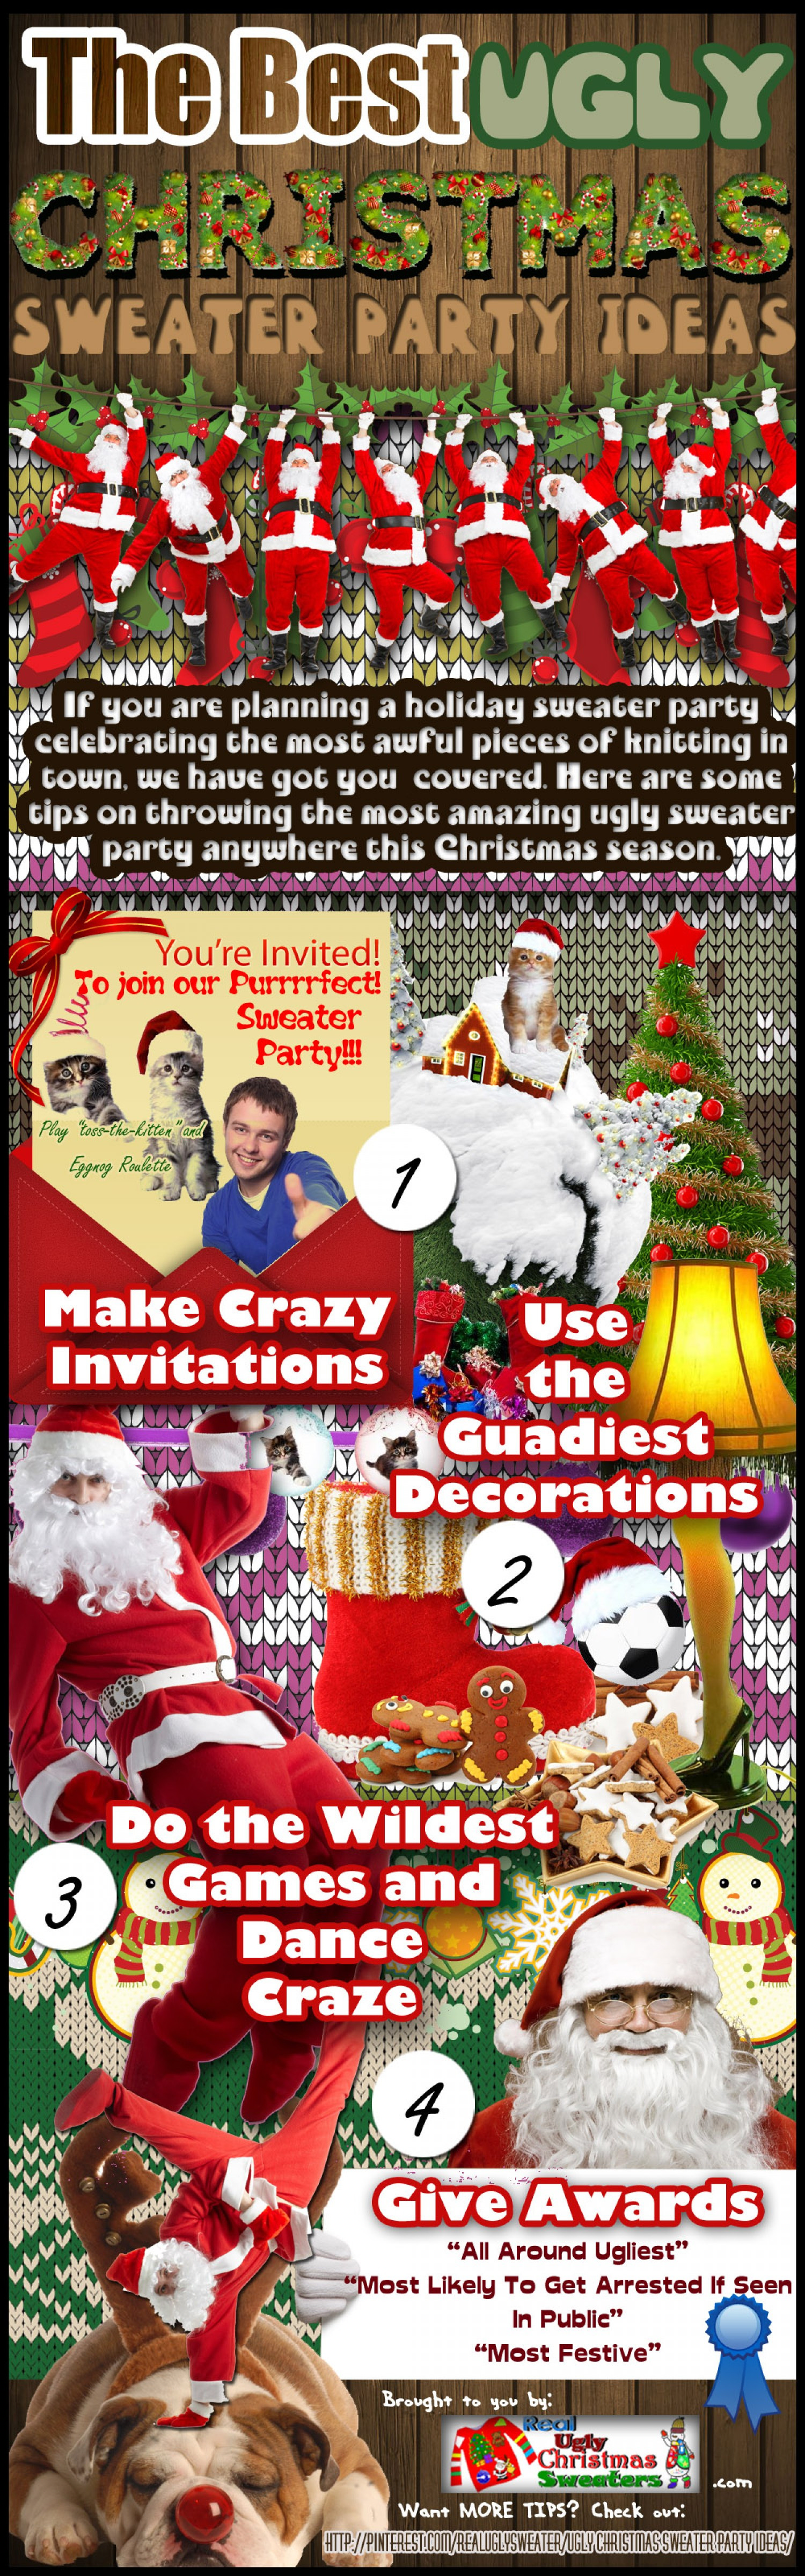 Christmas Sweater Party Ideas  The Best Ugly Christmas Sweater Party Ideas